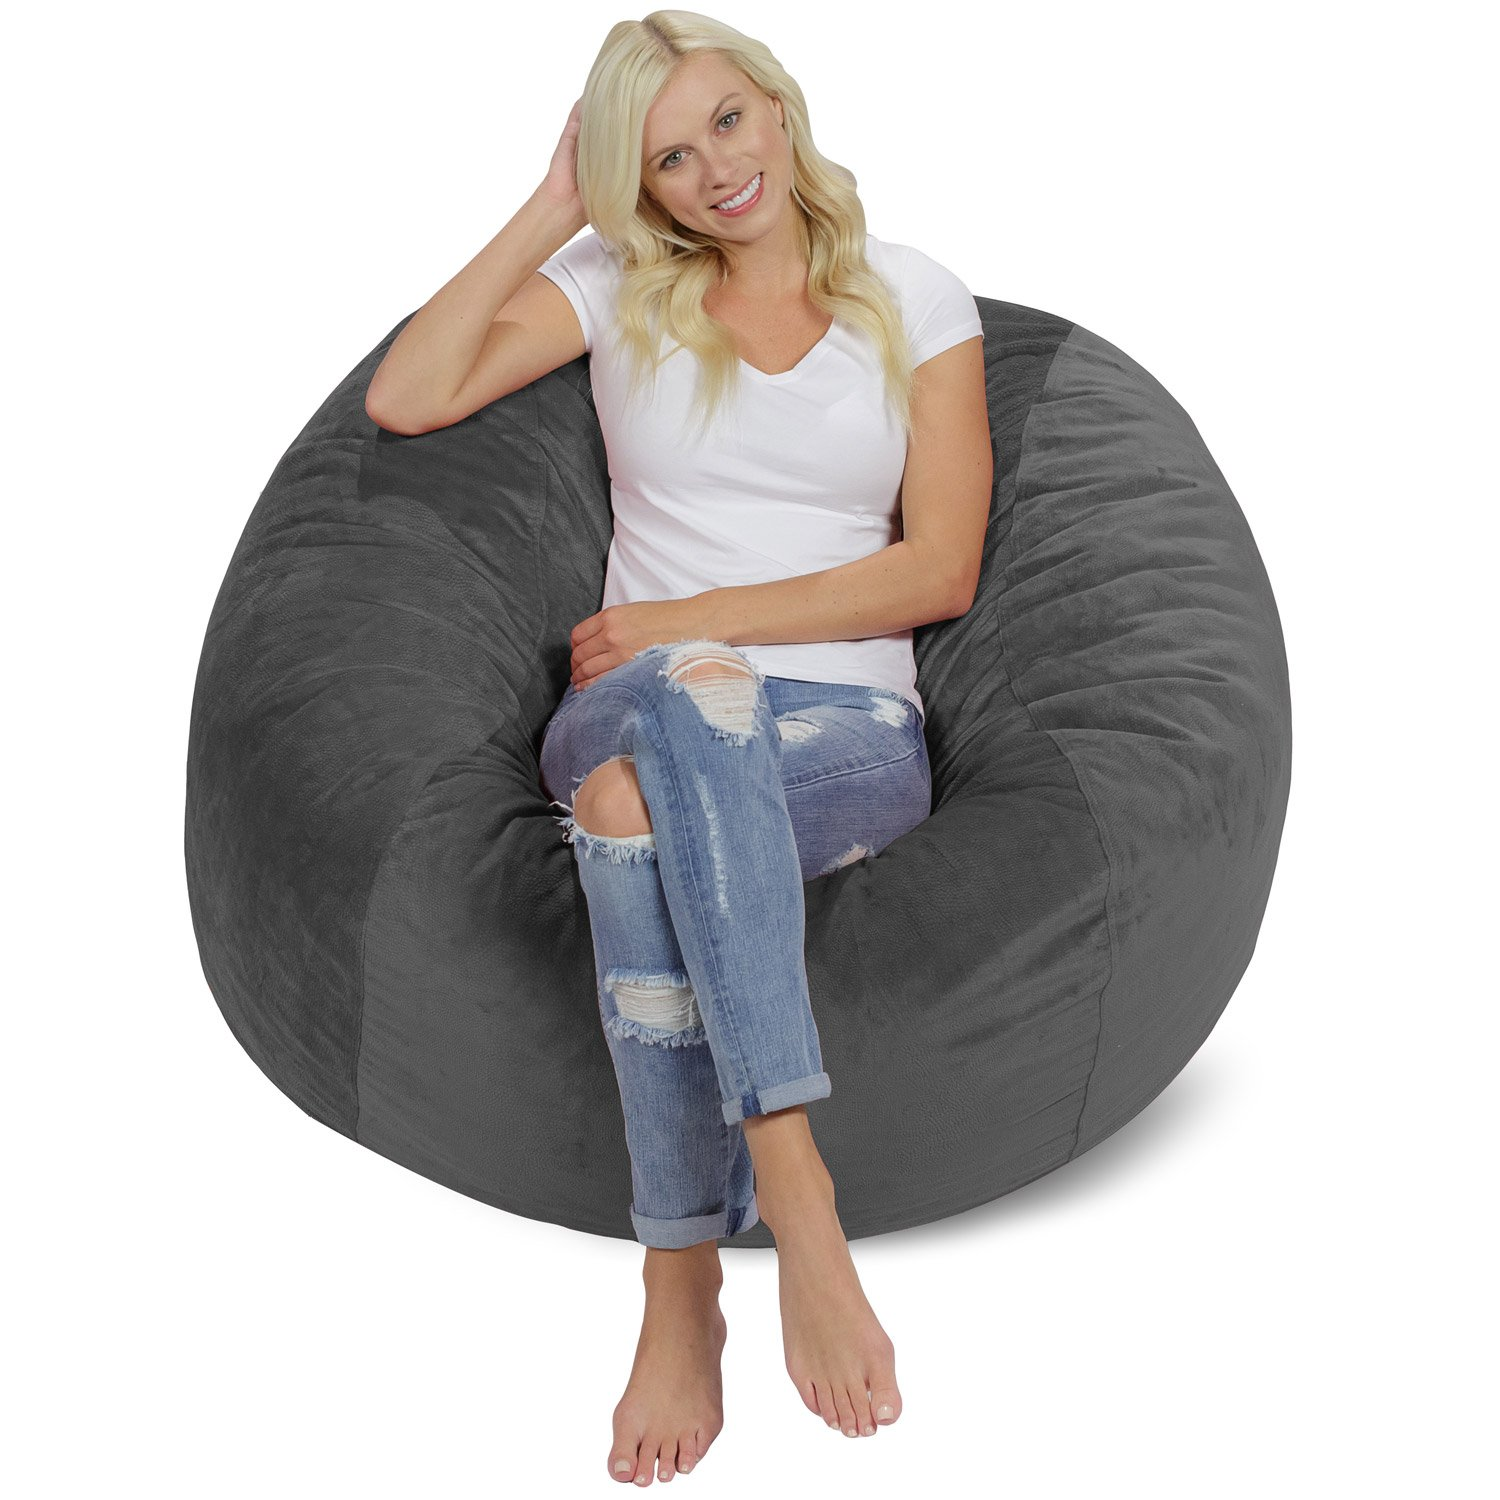 Chill Sack Bean Bag Chair: Giant 4' Memory Foam Furniture Bean Bag - Big Sofa Soft Micro Fiber Cover - Charcoal GT Ventures -- DROPSHIP AMZ-4SK-MS03